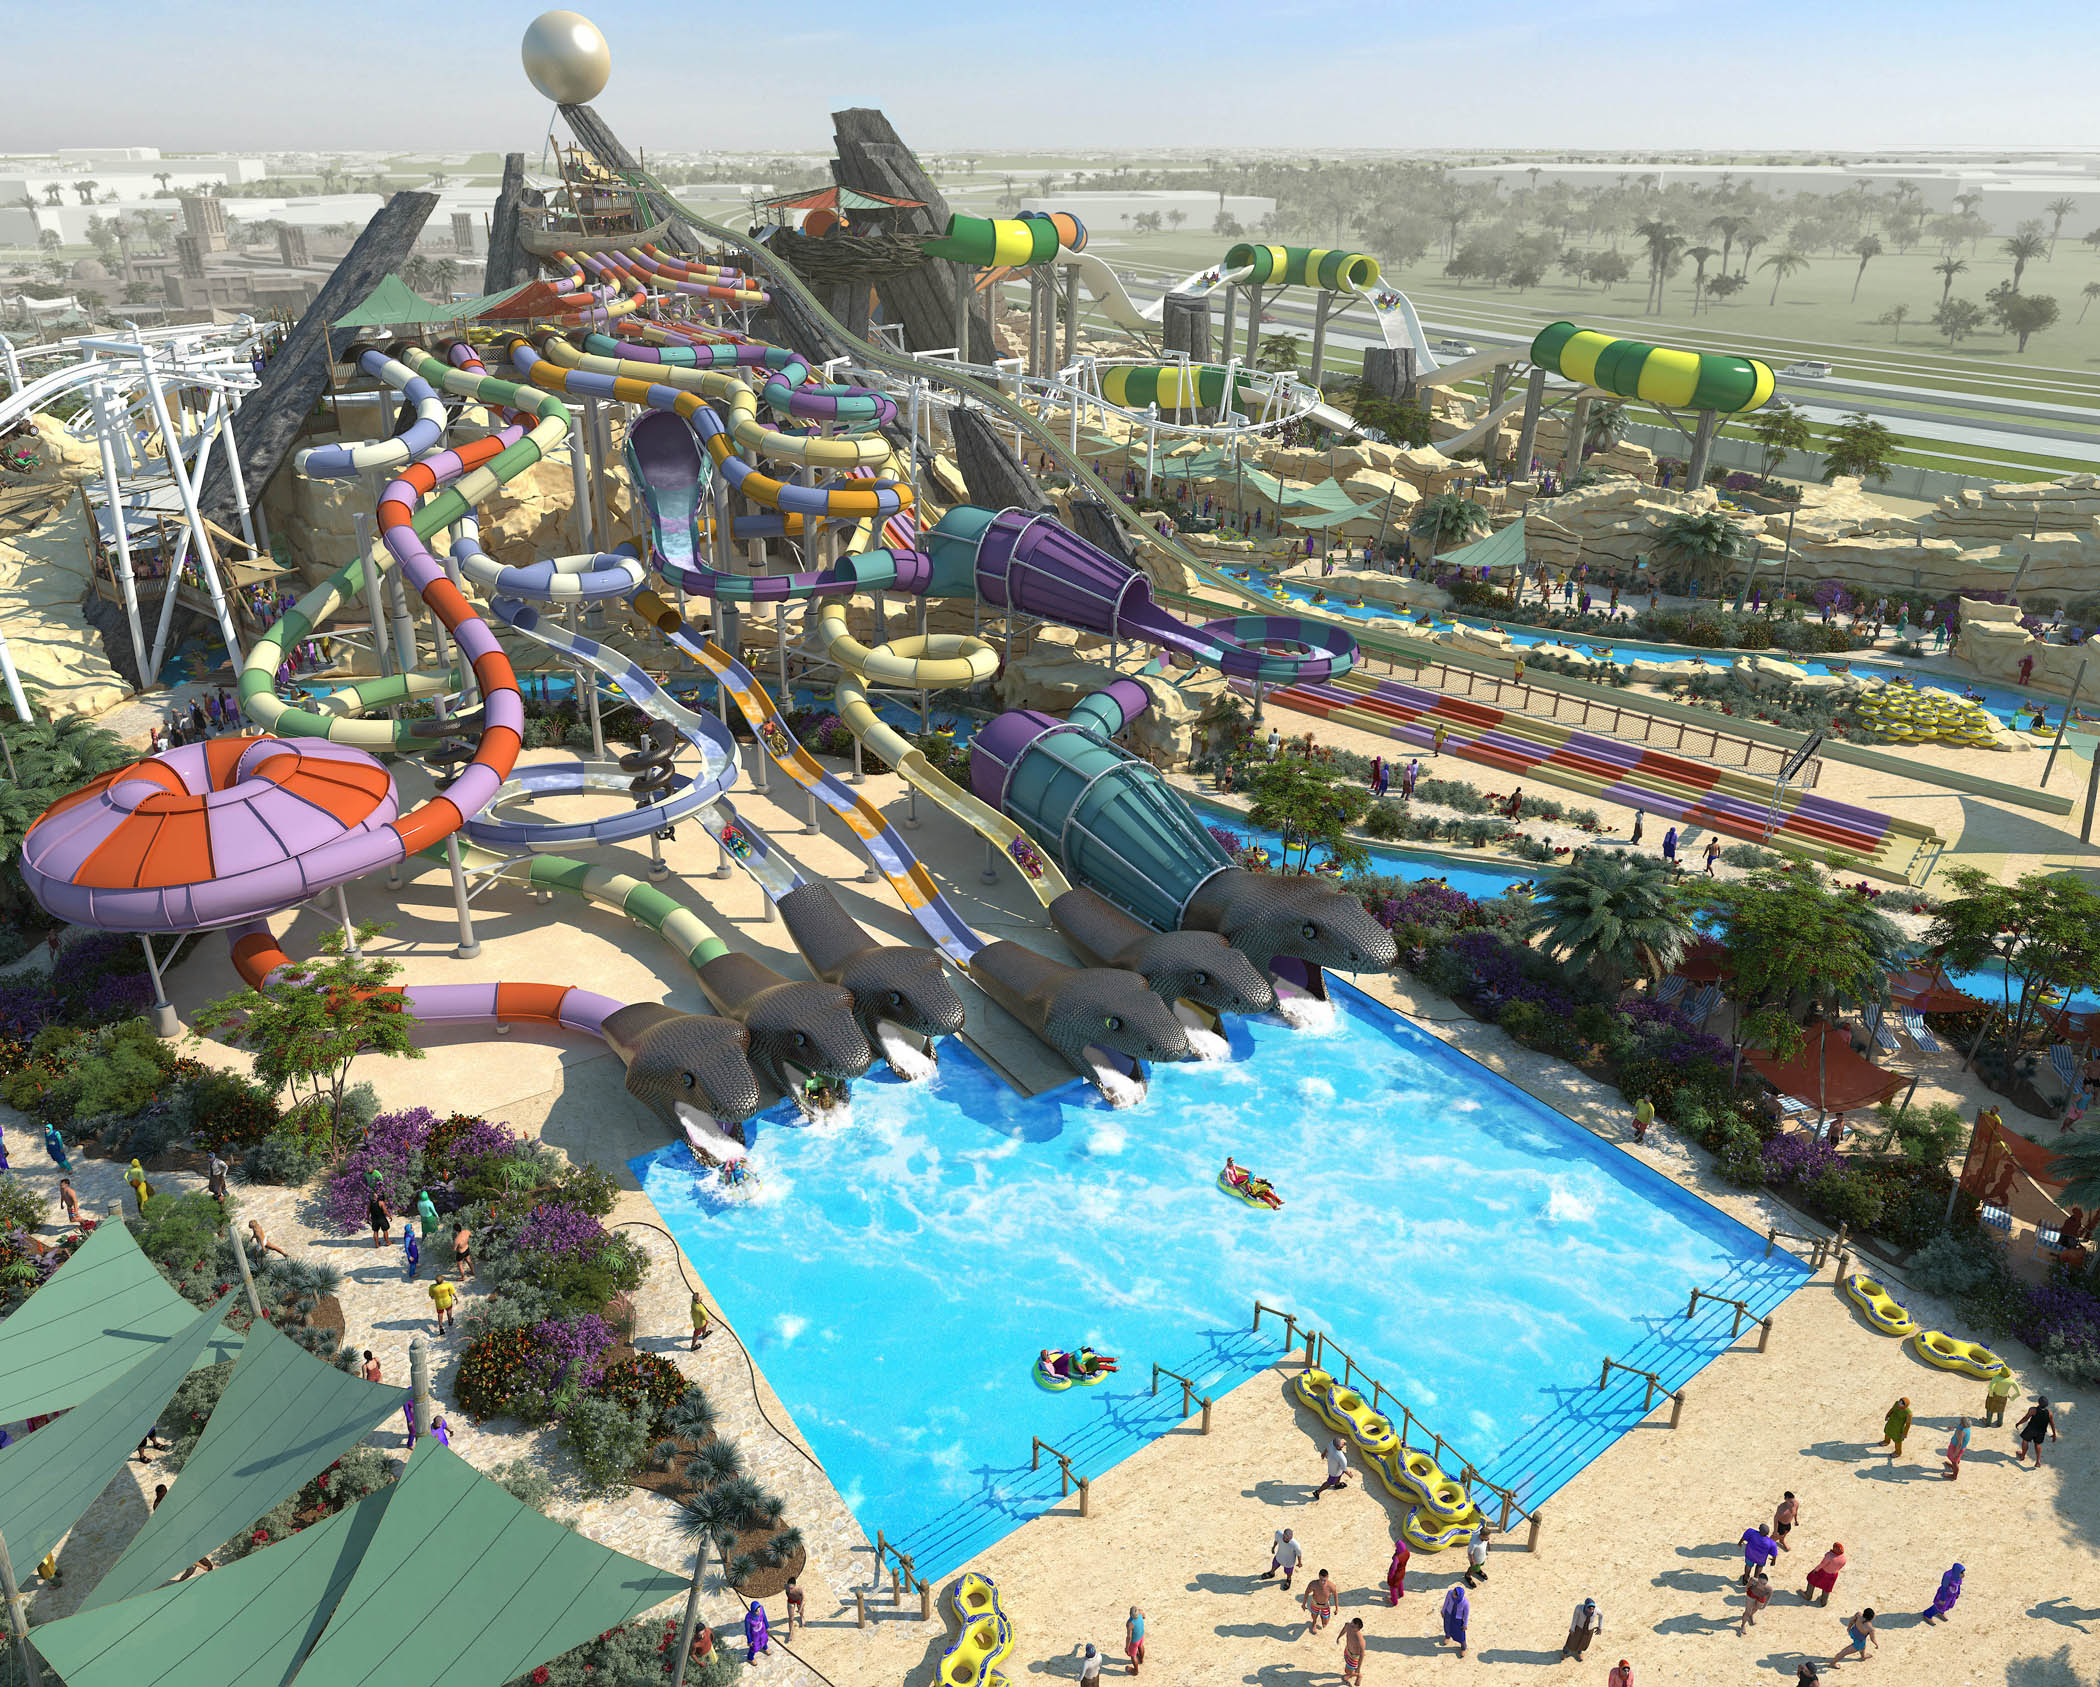 Abu Dhabi Yas Waterworld Mega Waterpark Inaugural On Jan 24 Latest Flights And Travel News